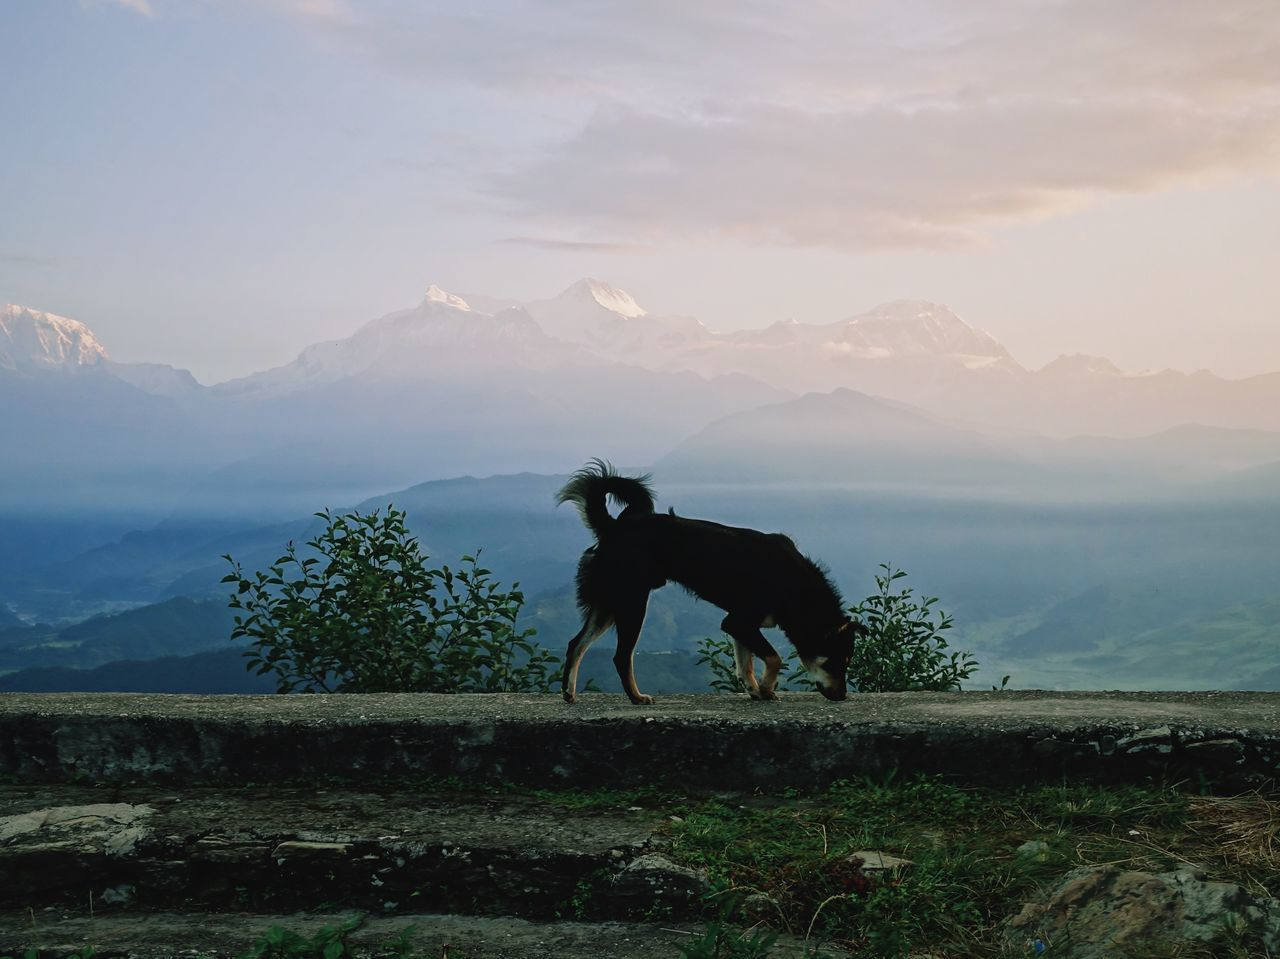 This dog would walk around at this viewpoint in the morning to watch the sunrise, it was amazing to witness. Adventure Annapurna Backpacker Clouds Clouds And Sky Dog Escapism Getting Away From It All Himalaya Himalayas Landscape Morning Mountain Mountain Range Nature Nepal No People Non-urban Scene Outdoors Photography Remote Travel VSCO Vscocam Wanderlust